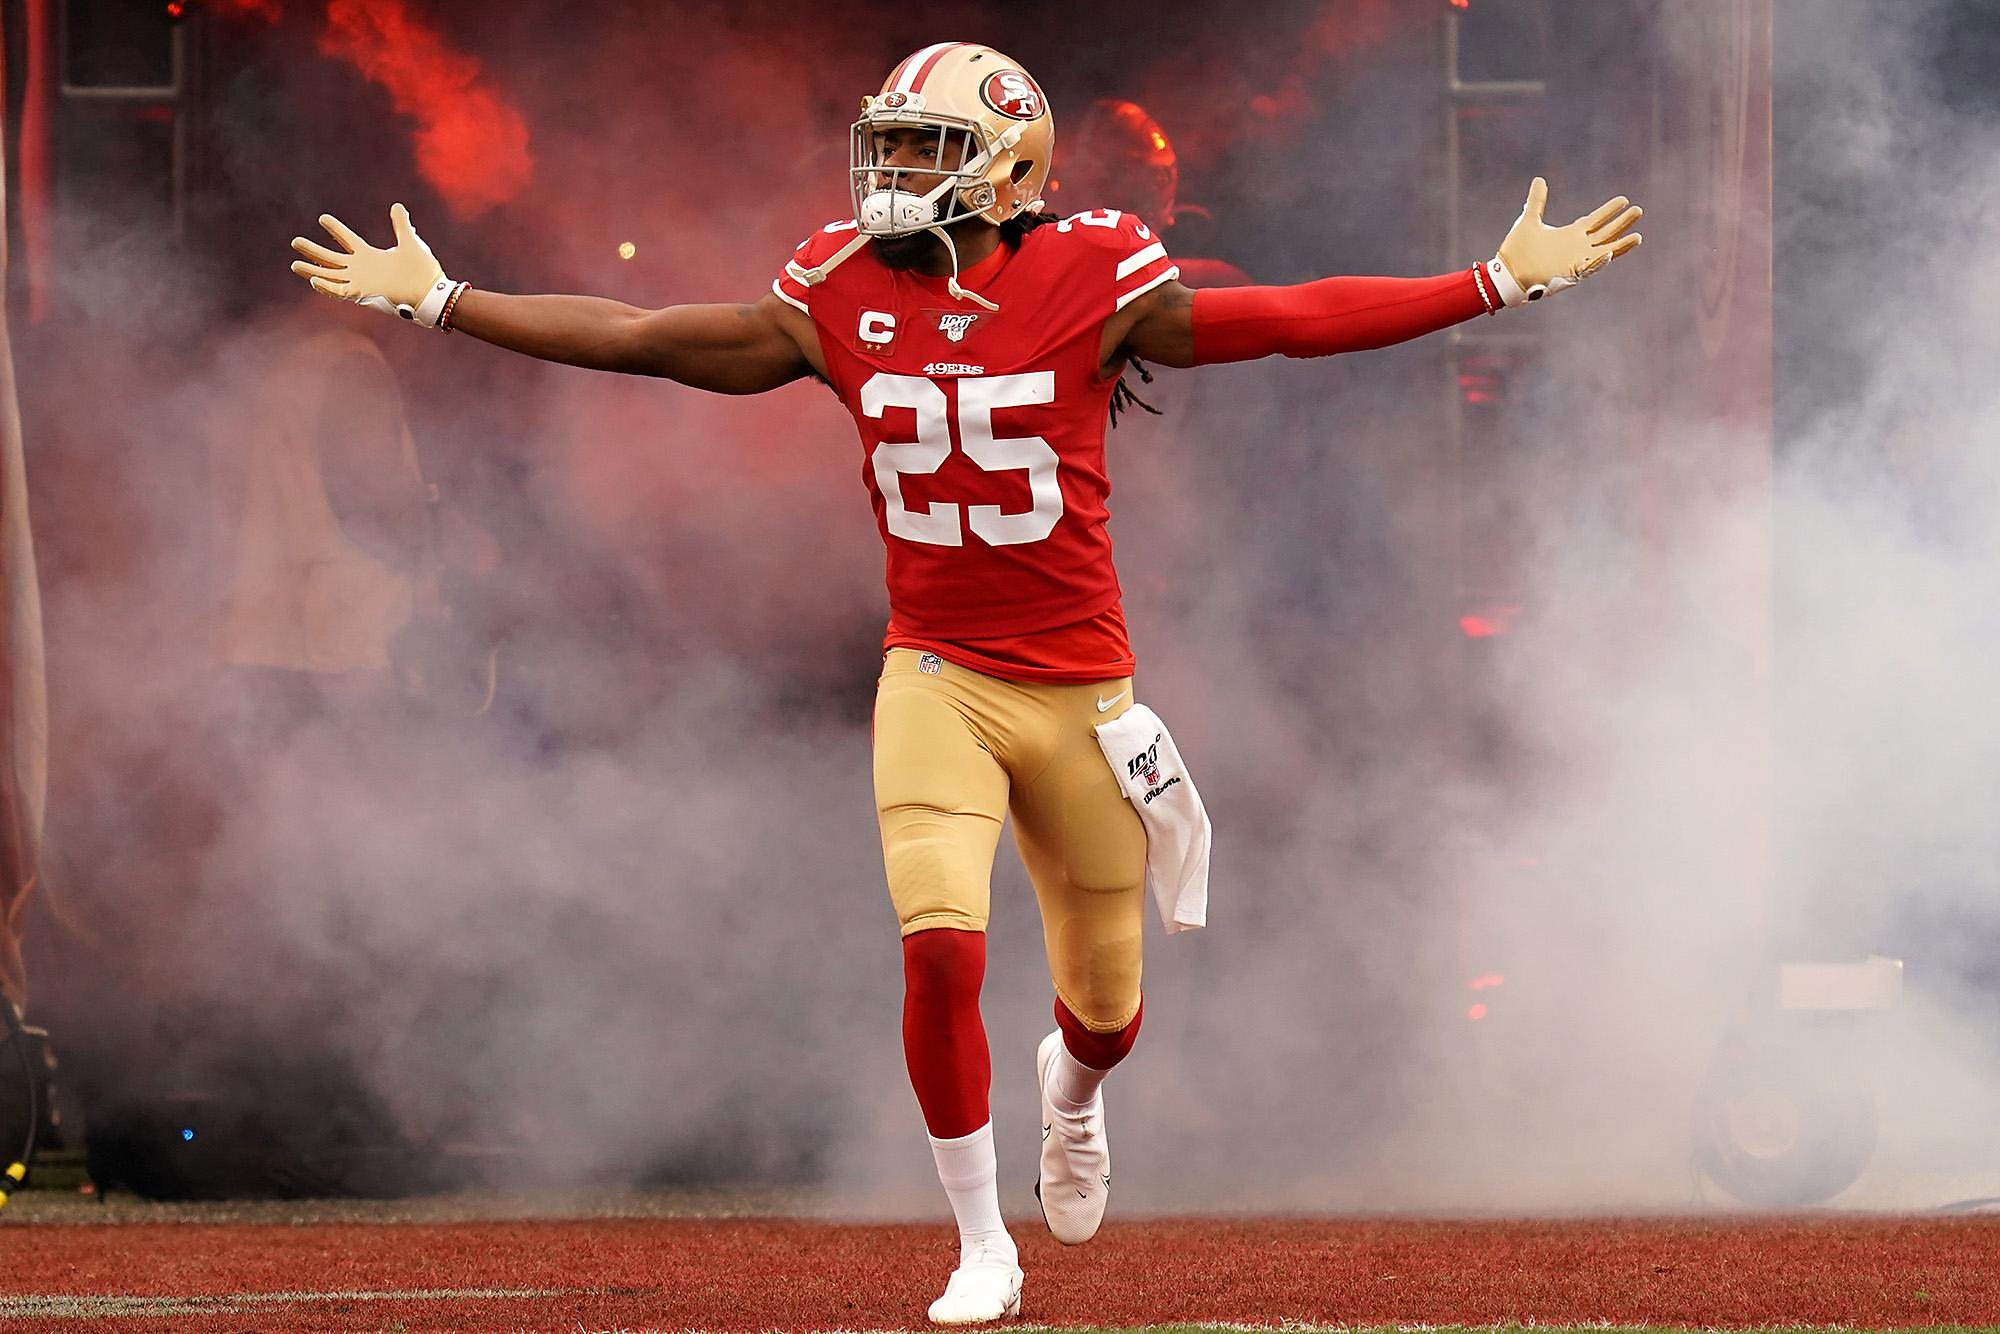 49ers star Richard Sherman abruptly placed on injured reserve